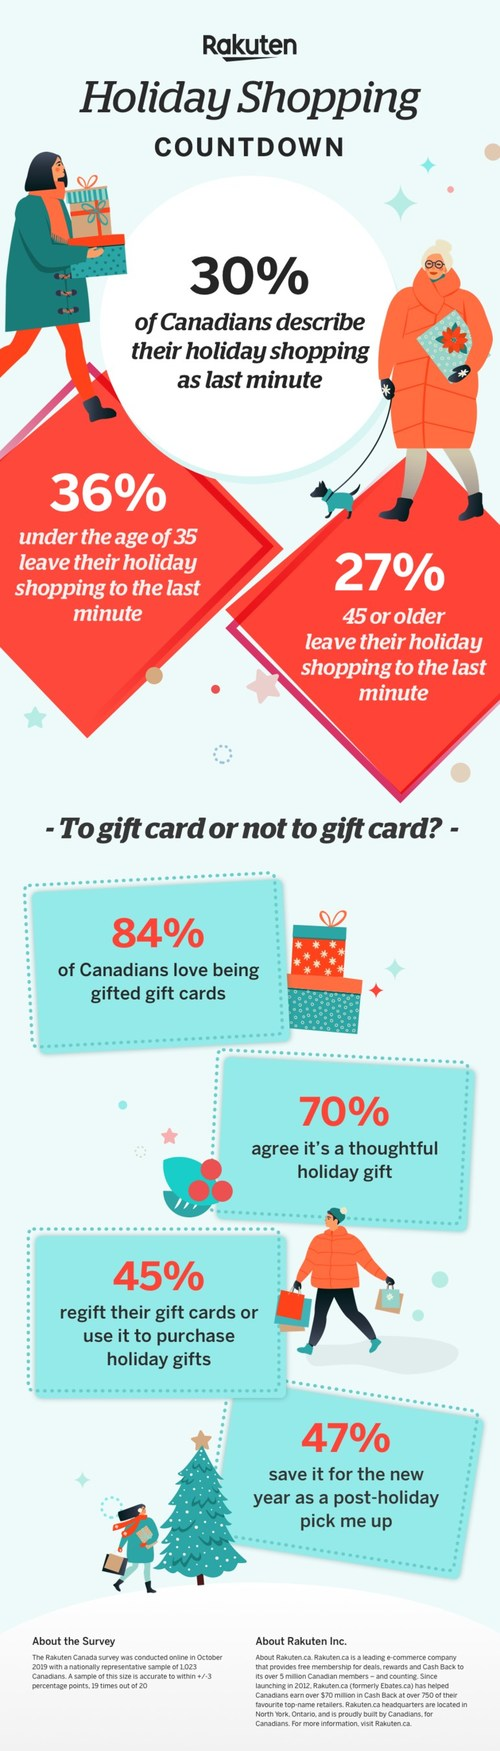 Canadians' shopping habits amidst the countdown to the holidays (CNW Group/Rakuten.ca)